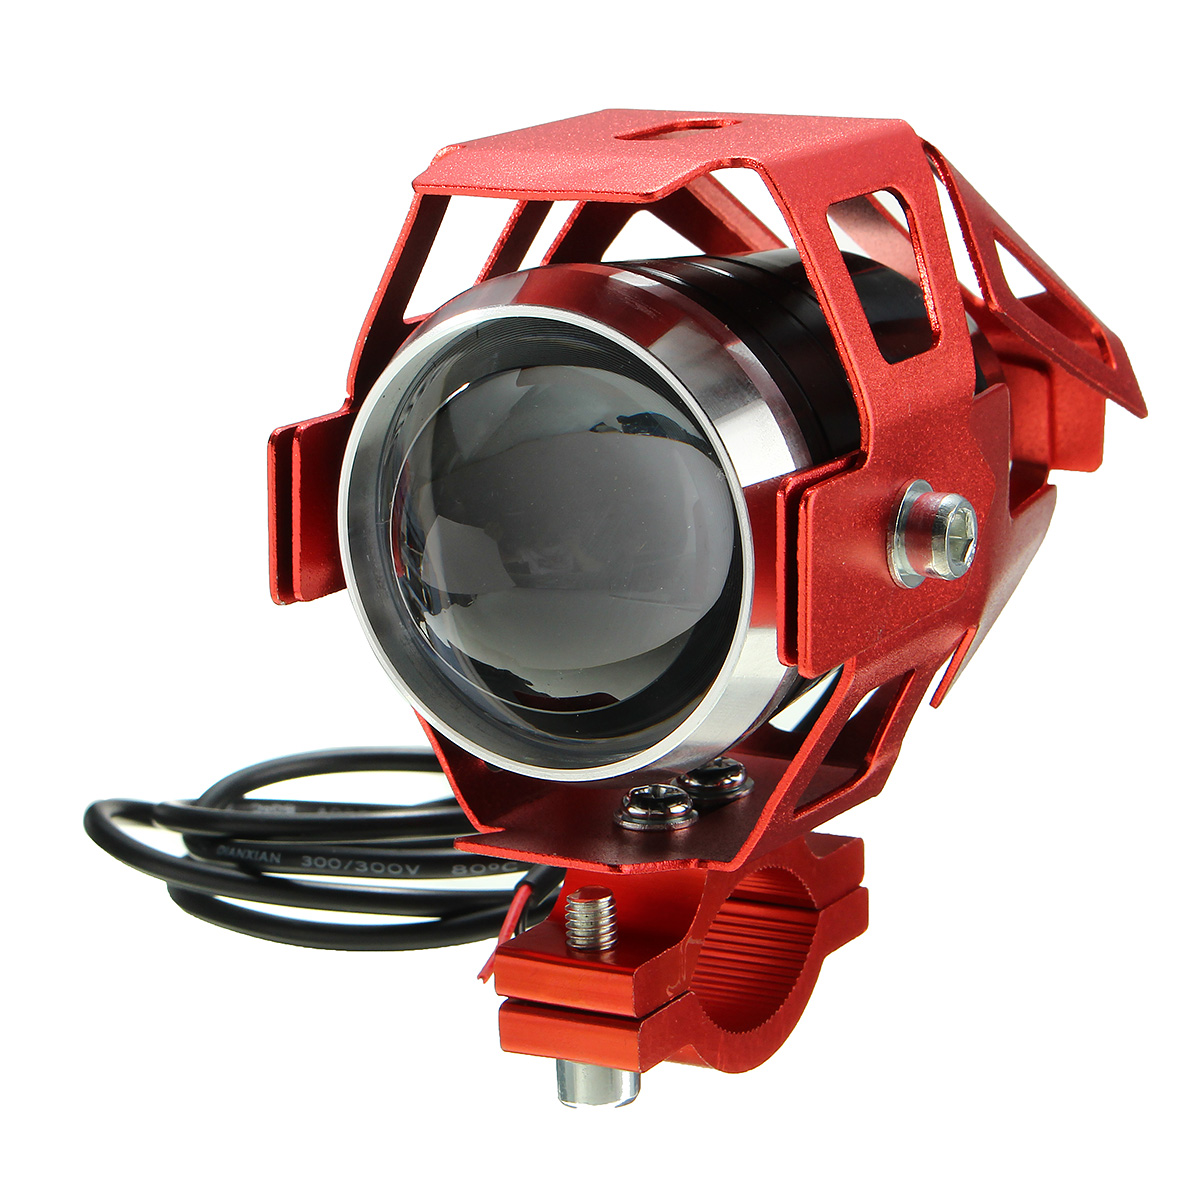 12V-80V U5 LED Motorcycle Headlight Driving Fog Lamp Spot Light Red Frame